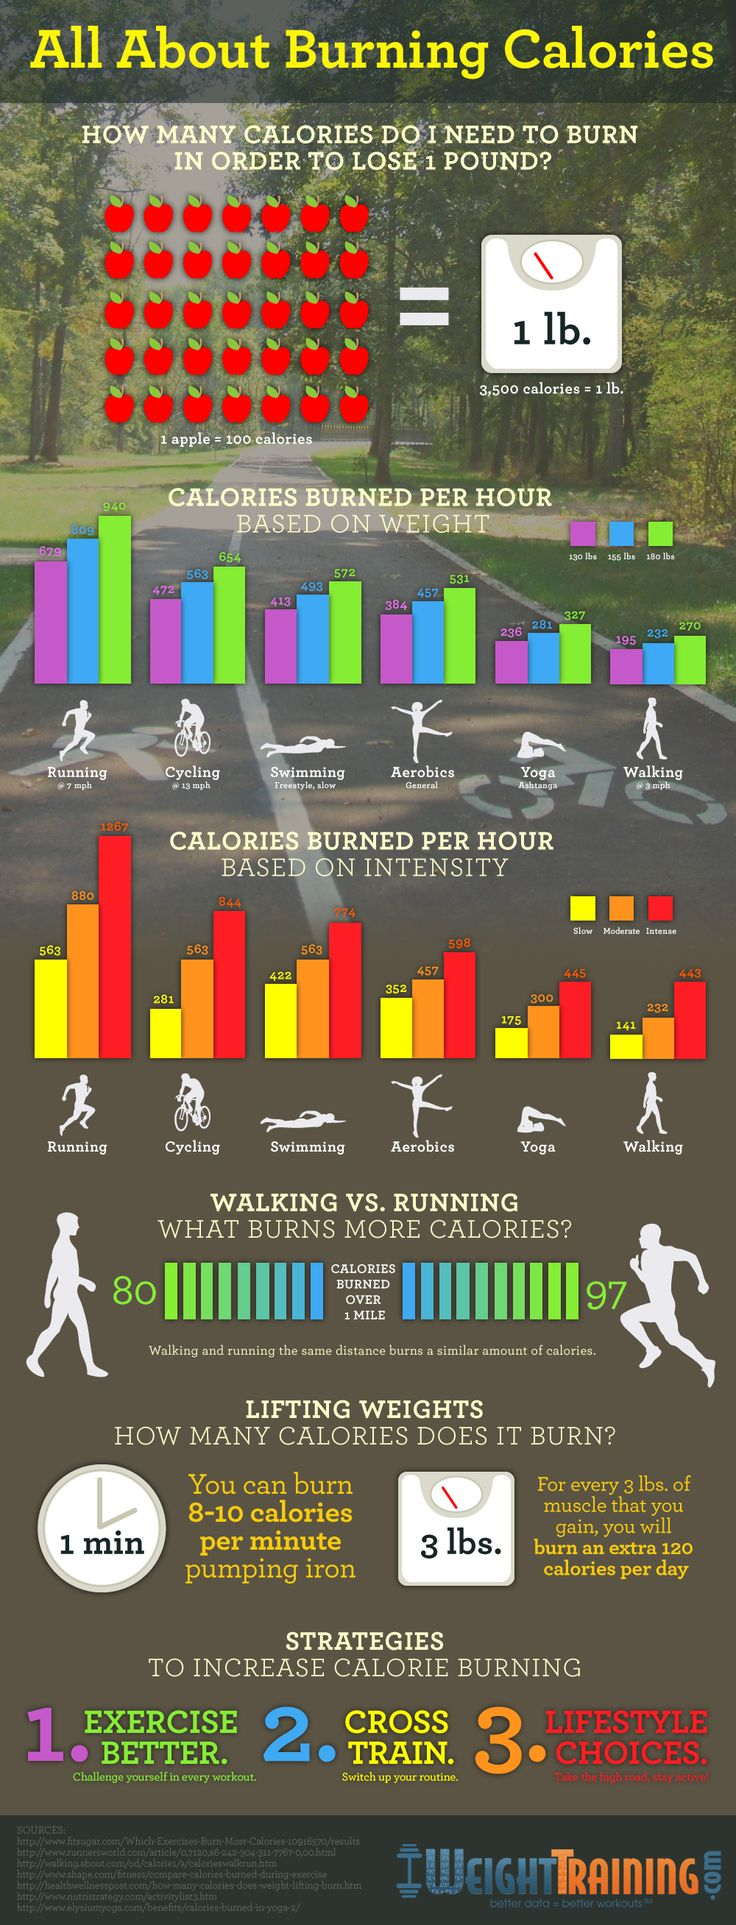 Burning Calories #fitness #gym #personaltraining #personaltrainer #workout  #weight-loss